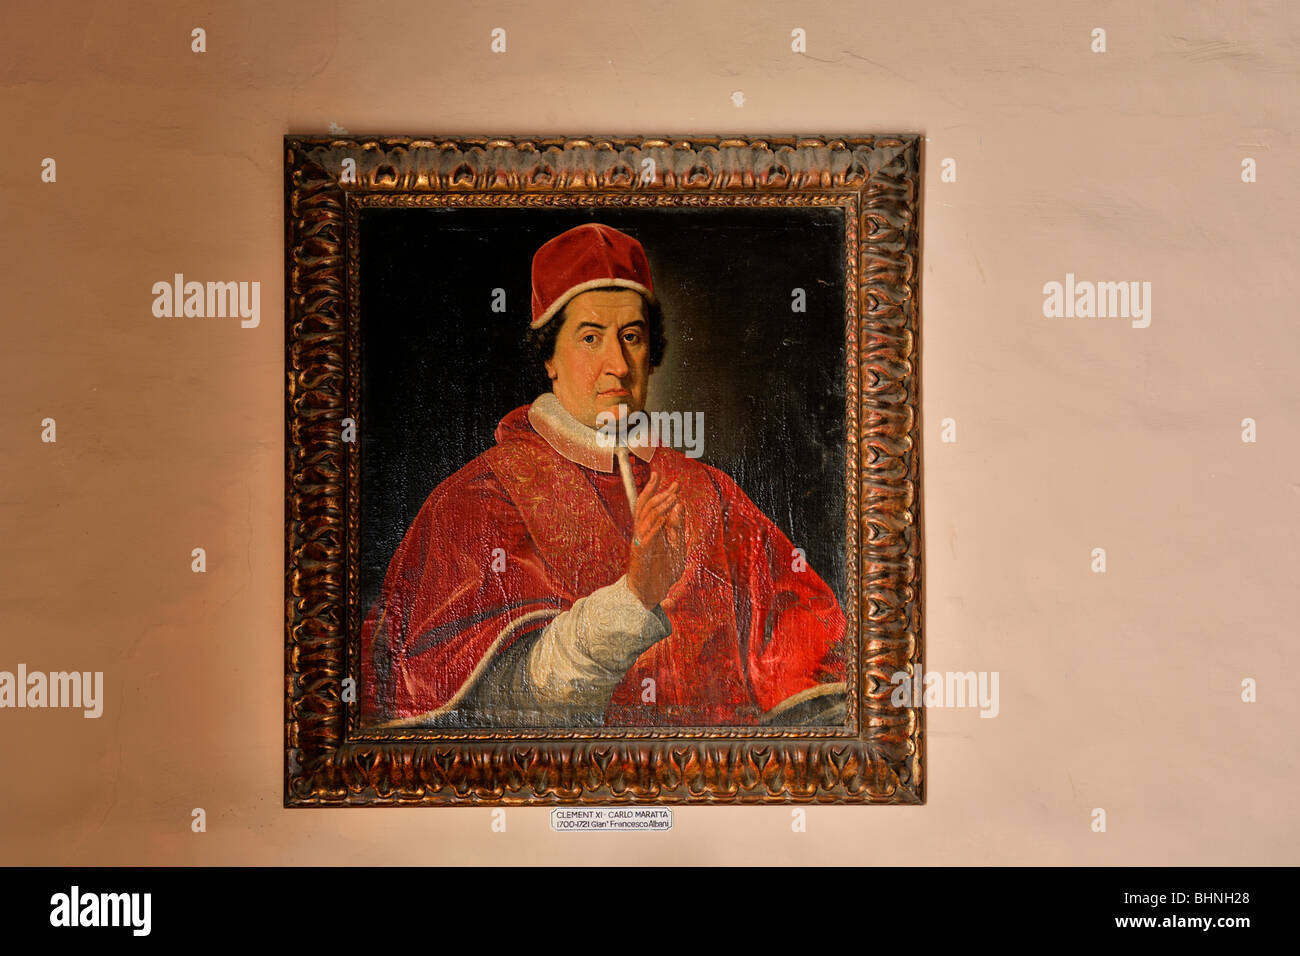 Pope Clement XI by Carlo Maratta - Stock Image